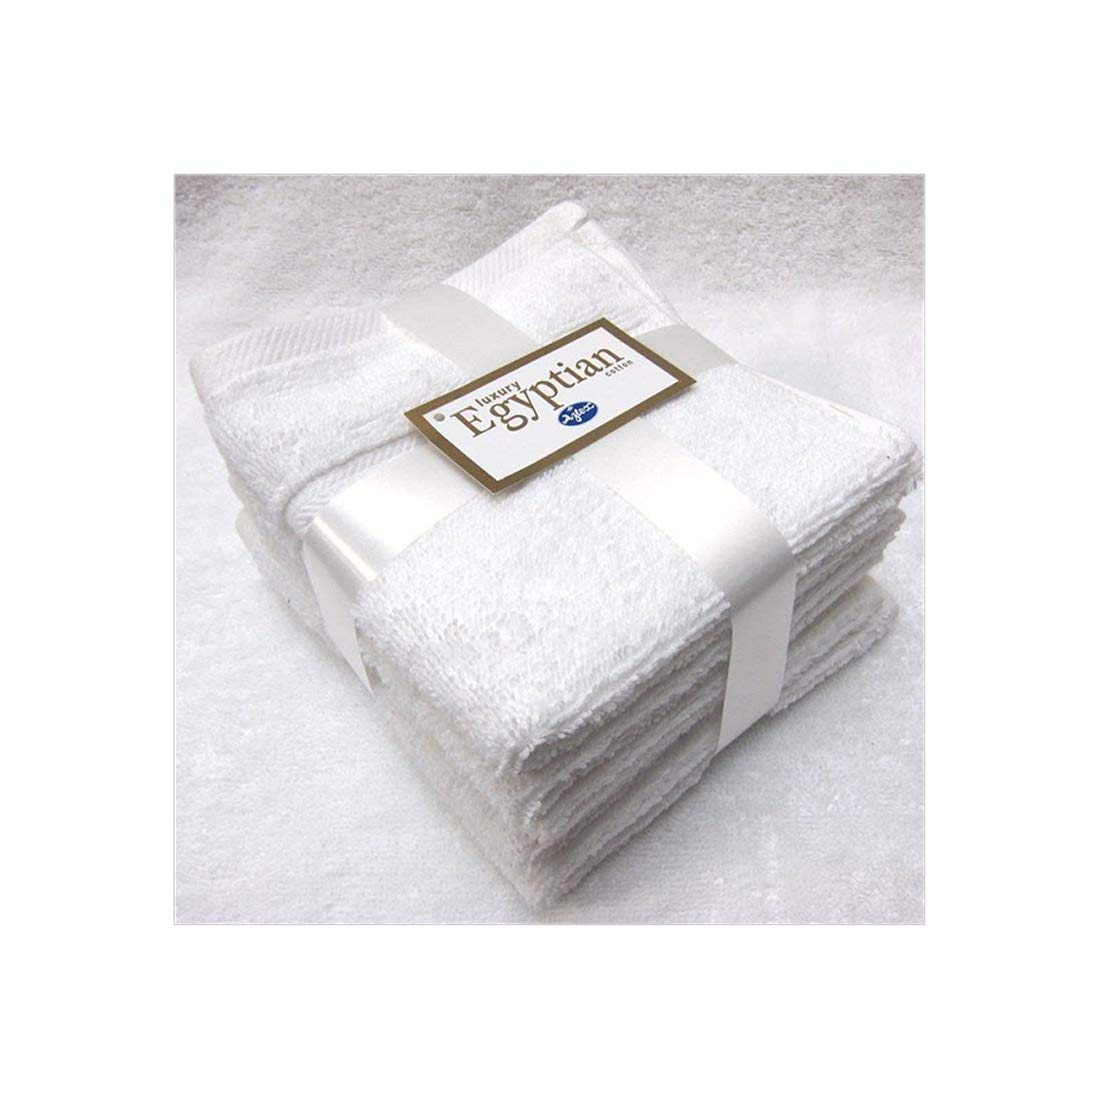 TowelsRus 100% Egyptian Super Soft Cotton Beauty Face Flannels Towels Pack of 5 Luxury White Face Cloths, 550gsm